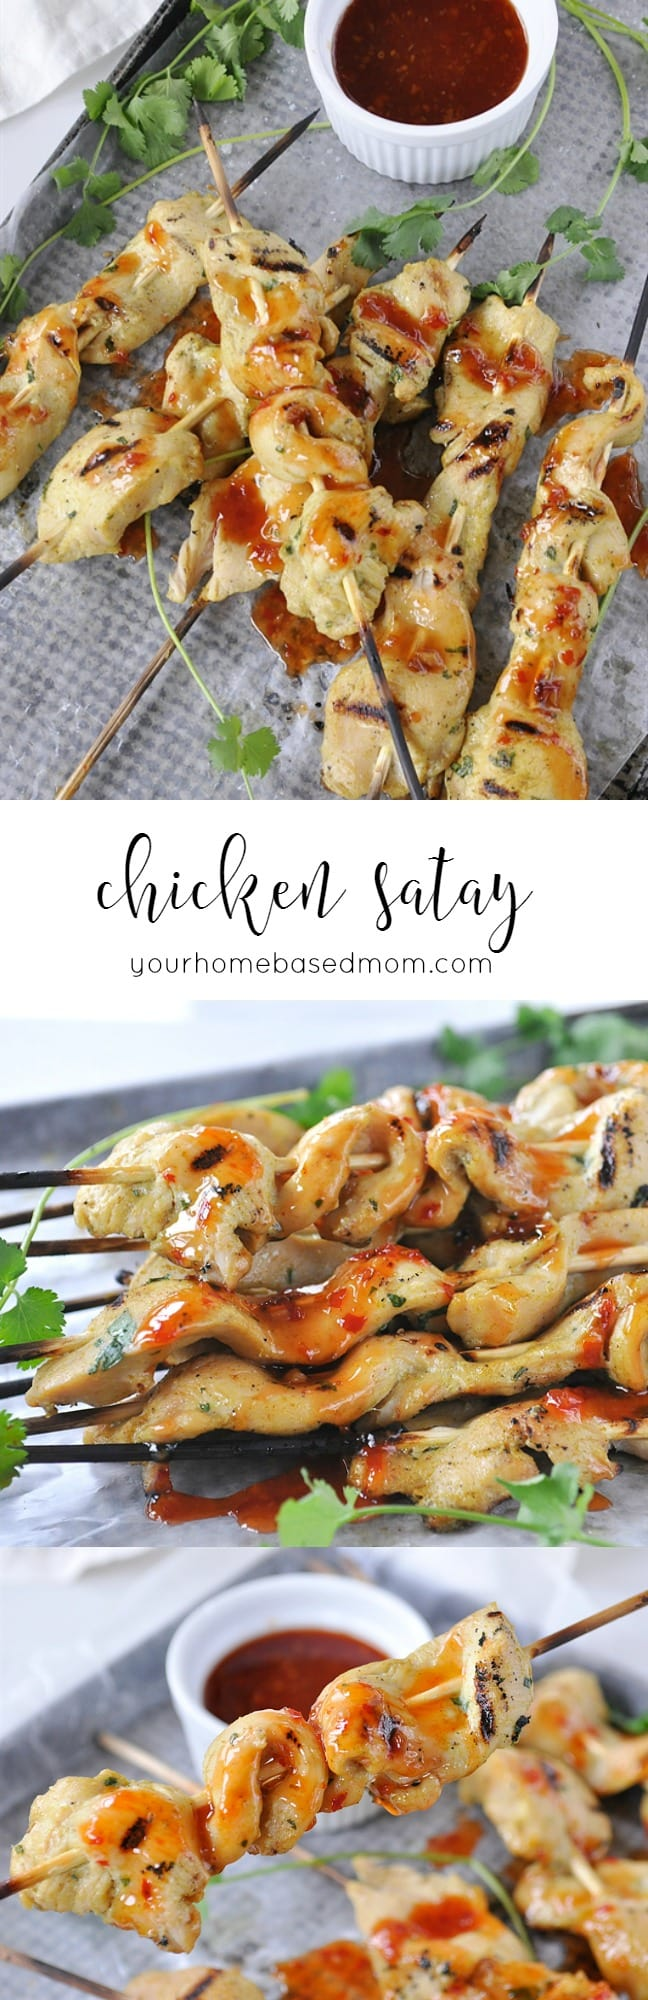 Chicken Satay is a fun and easy appetizer to make and eat @yourhomebasedmom.com